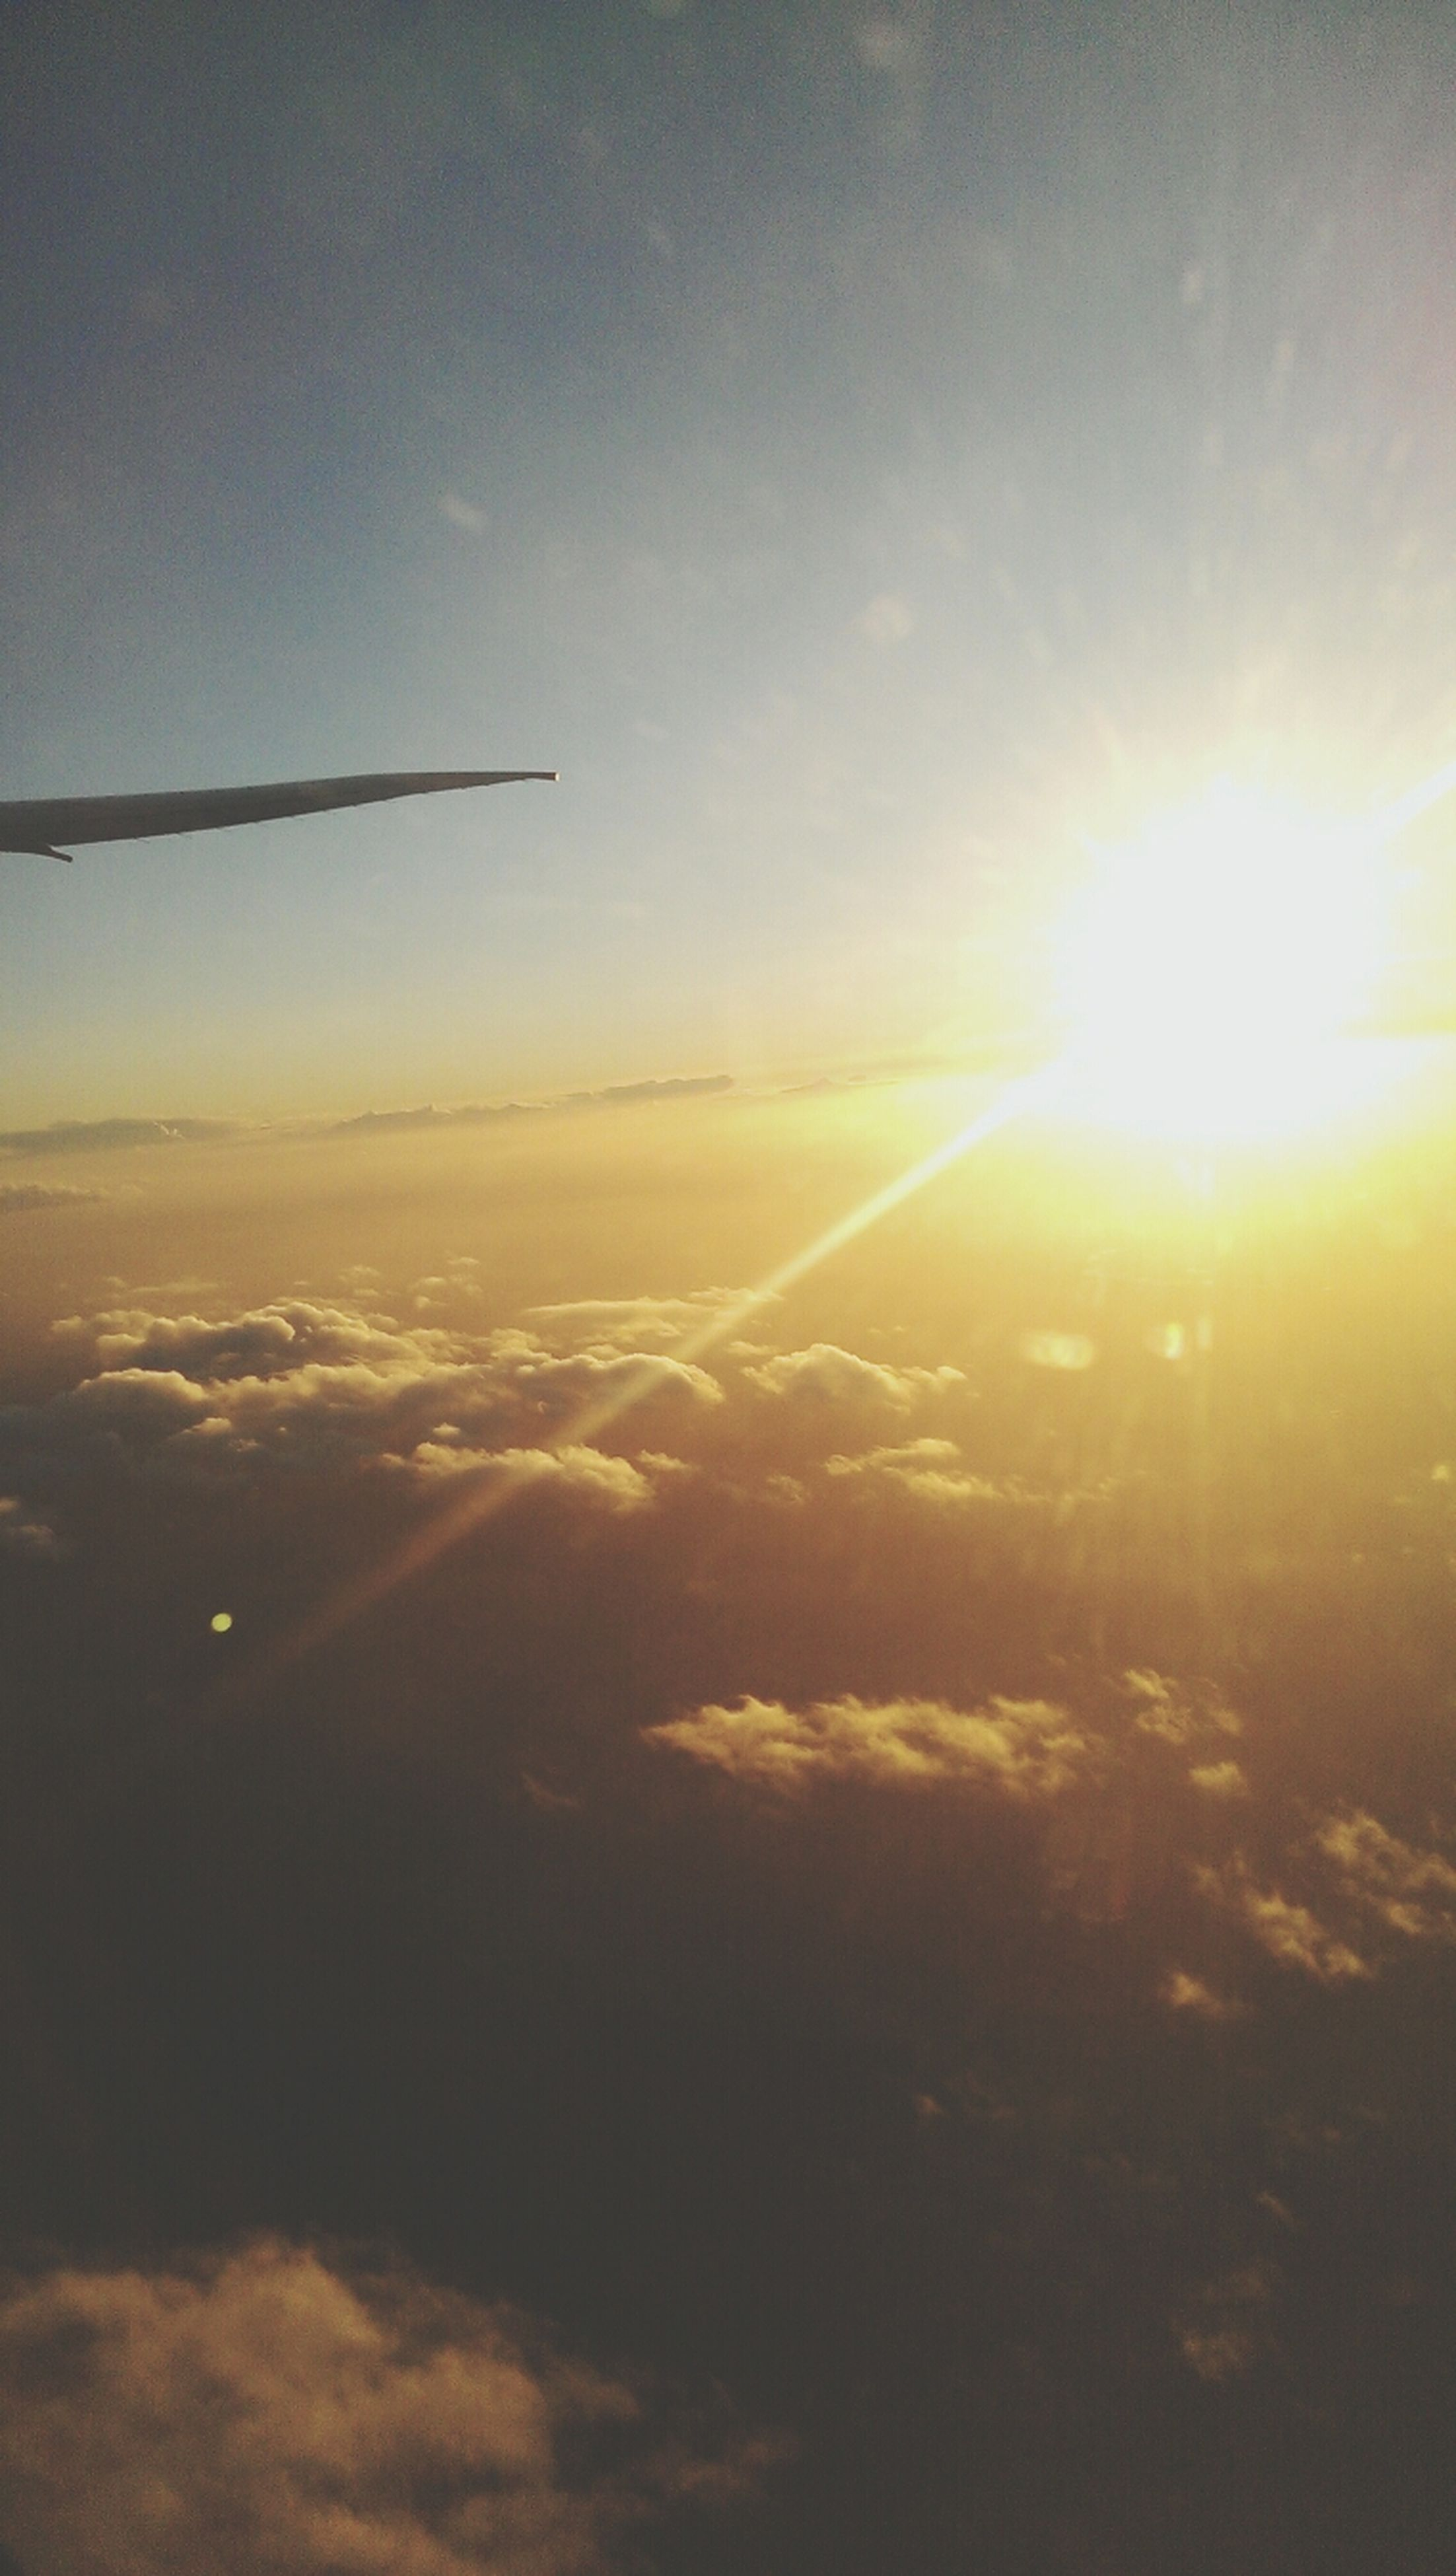 sun, sunset, scenics, sky, beauty in nature, sunbeam, sunlight, tranquil scene, tranquility, landscape, nature, flying, lens flare, idyllic, cloud - sky, orange color, bright, outdoors, airplane, aerial view